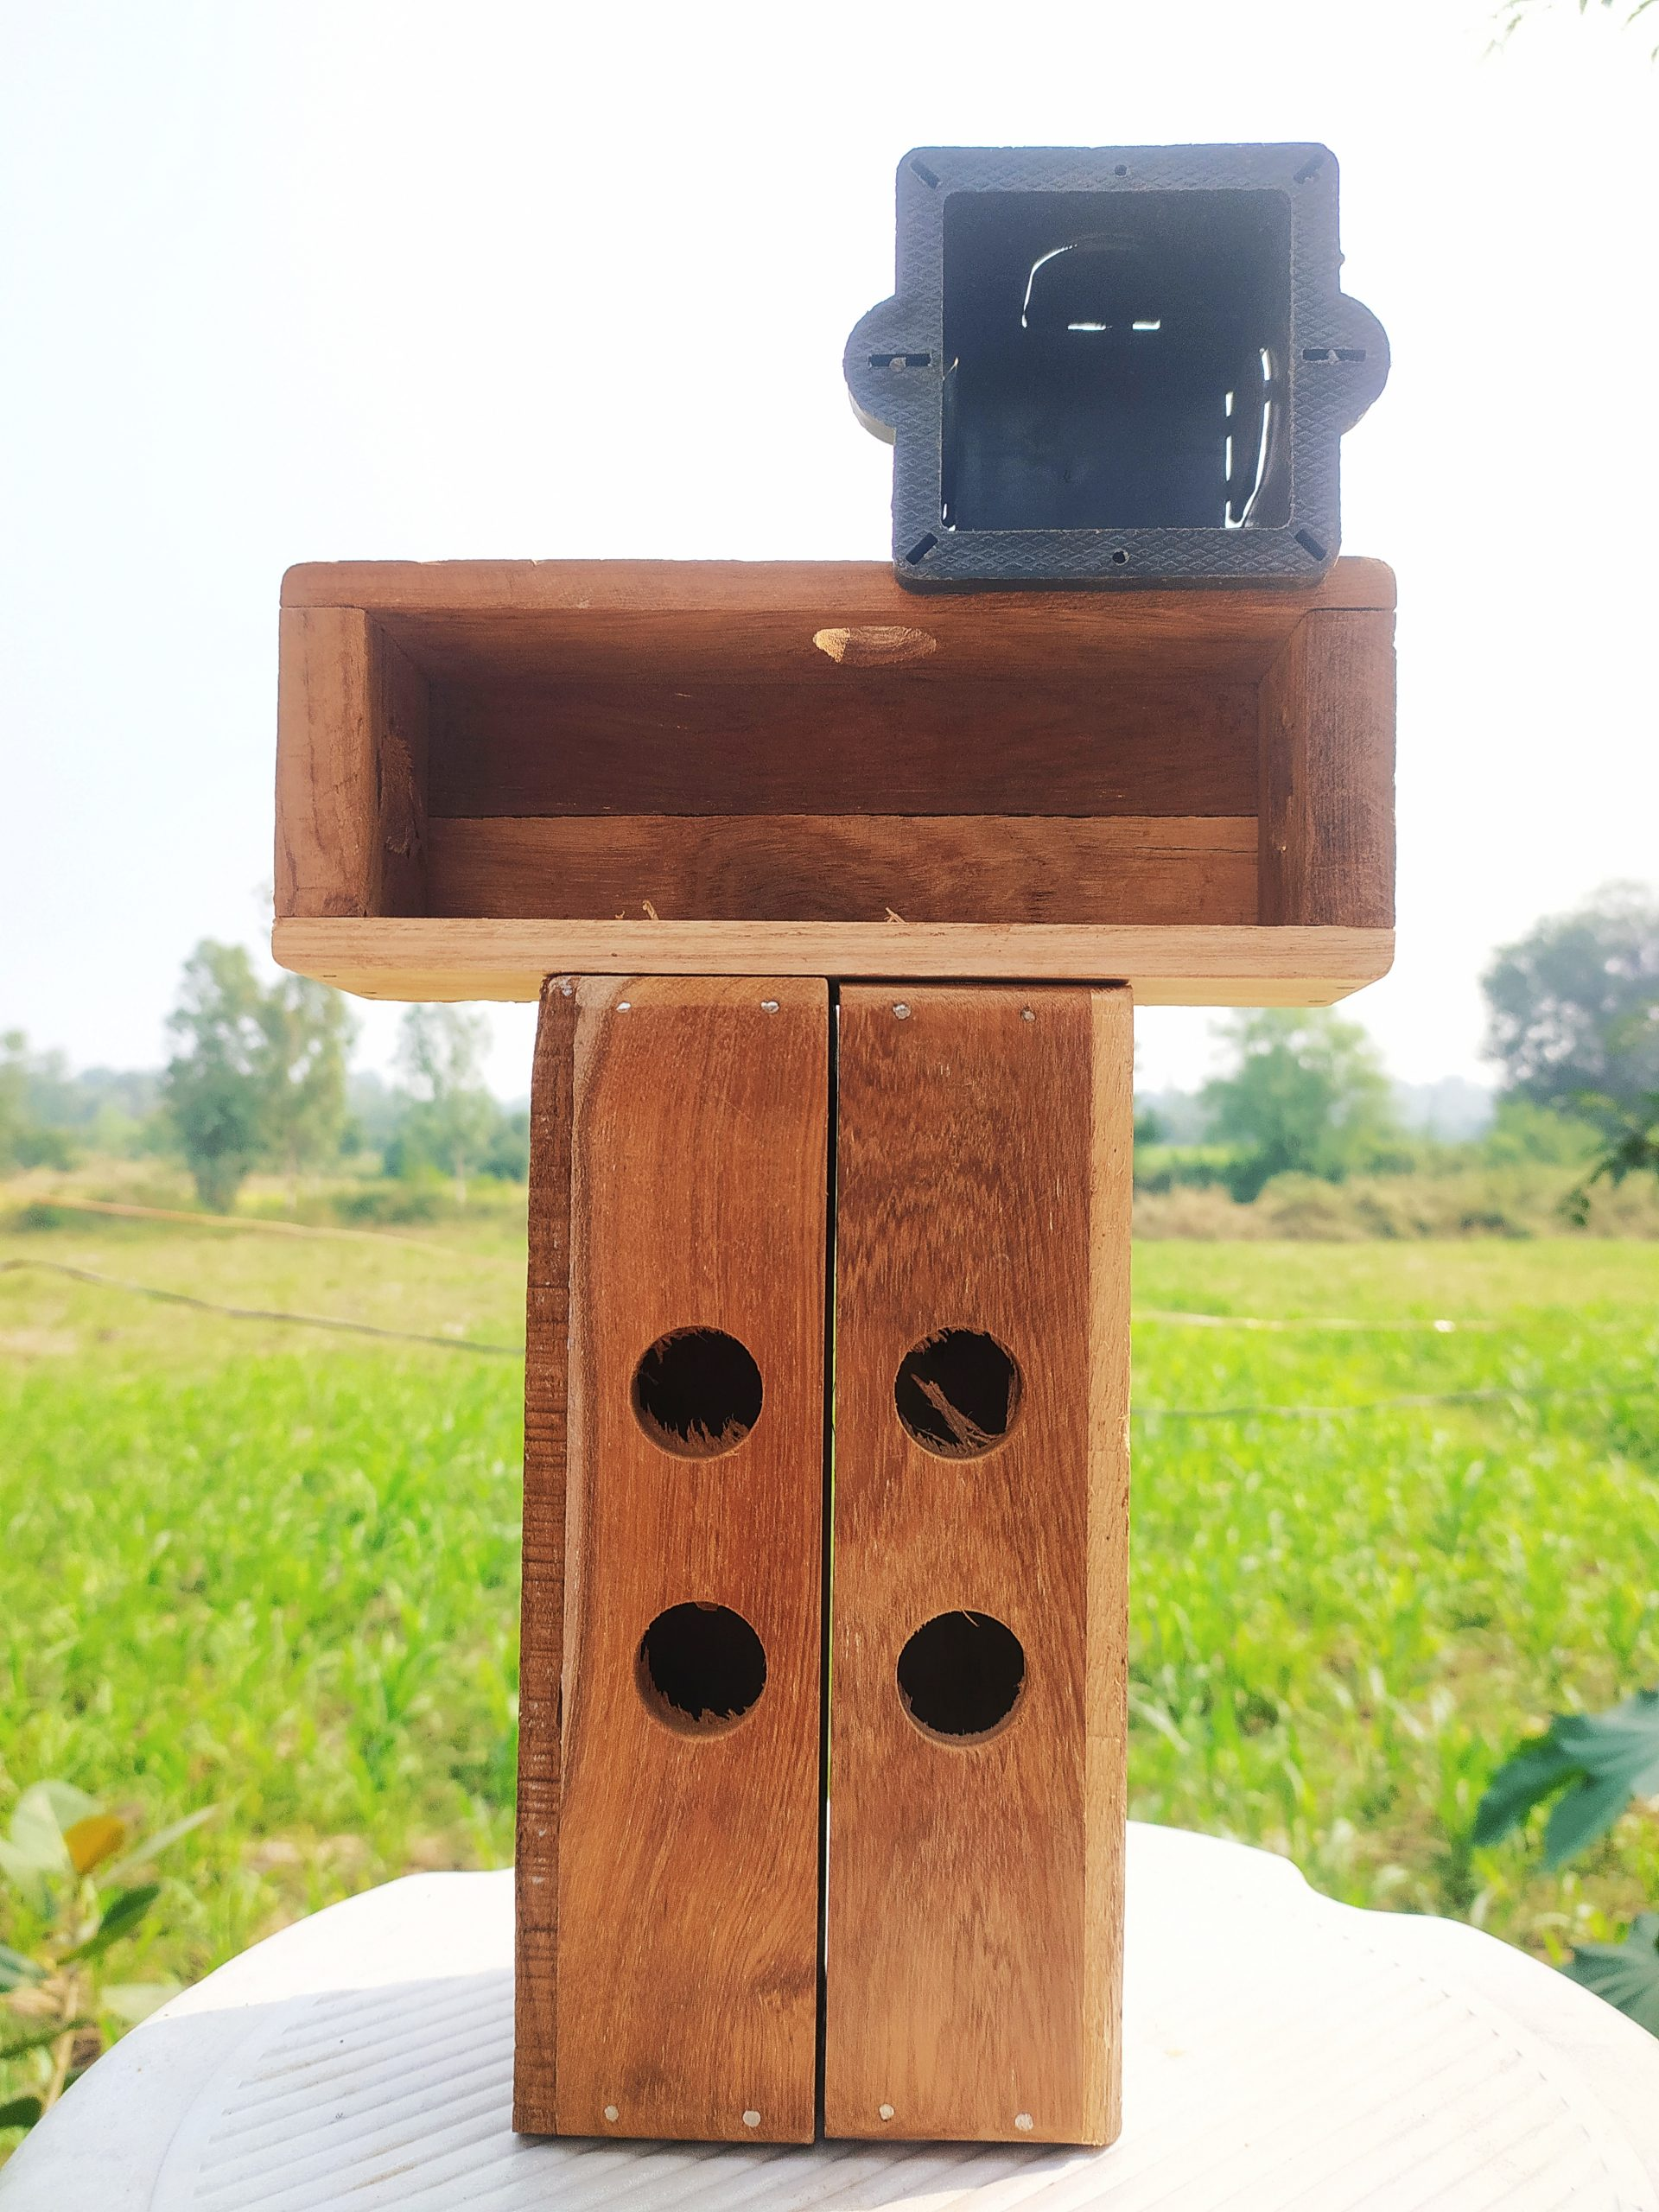 A switch board wooden frame